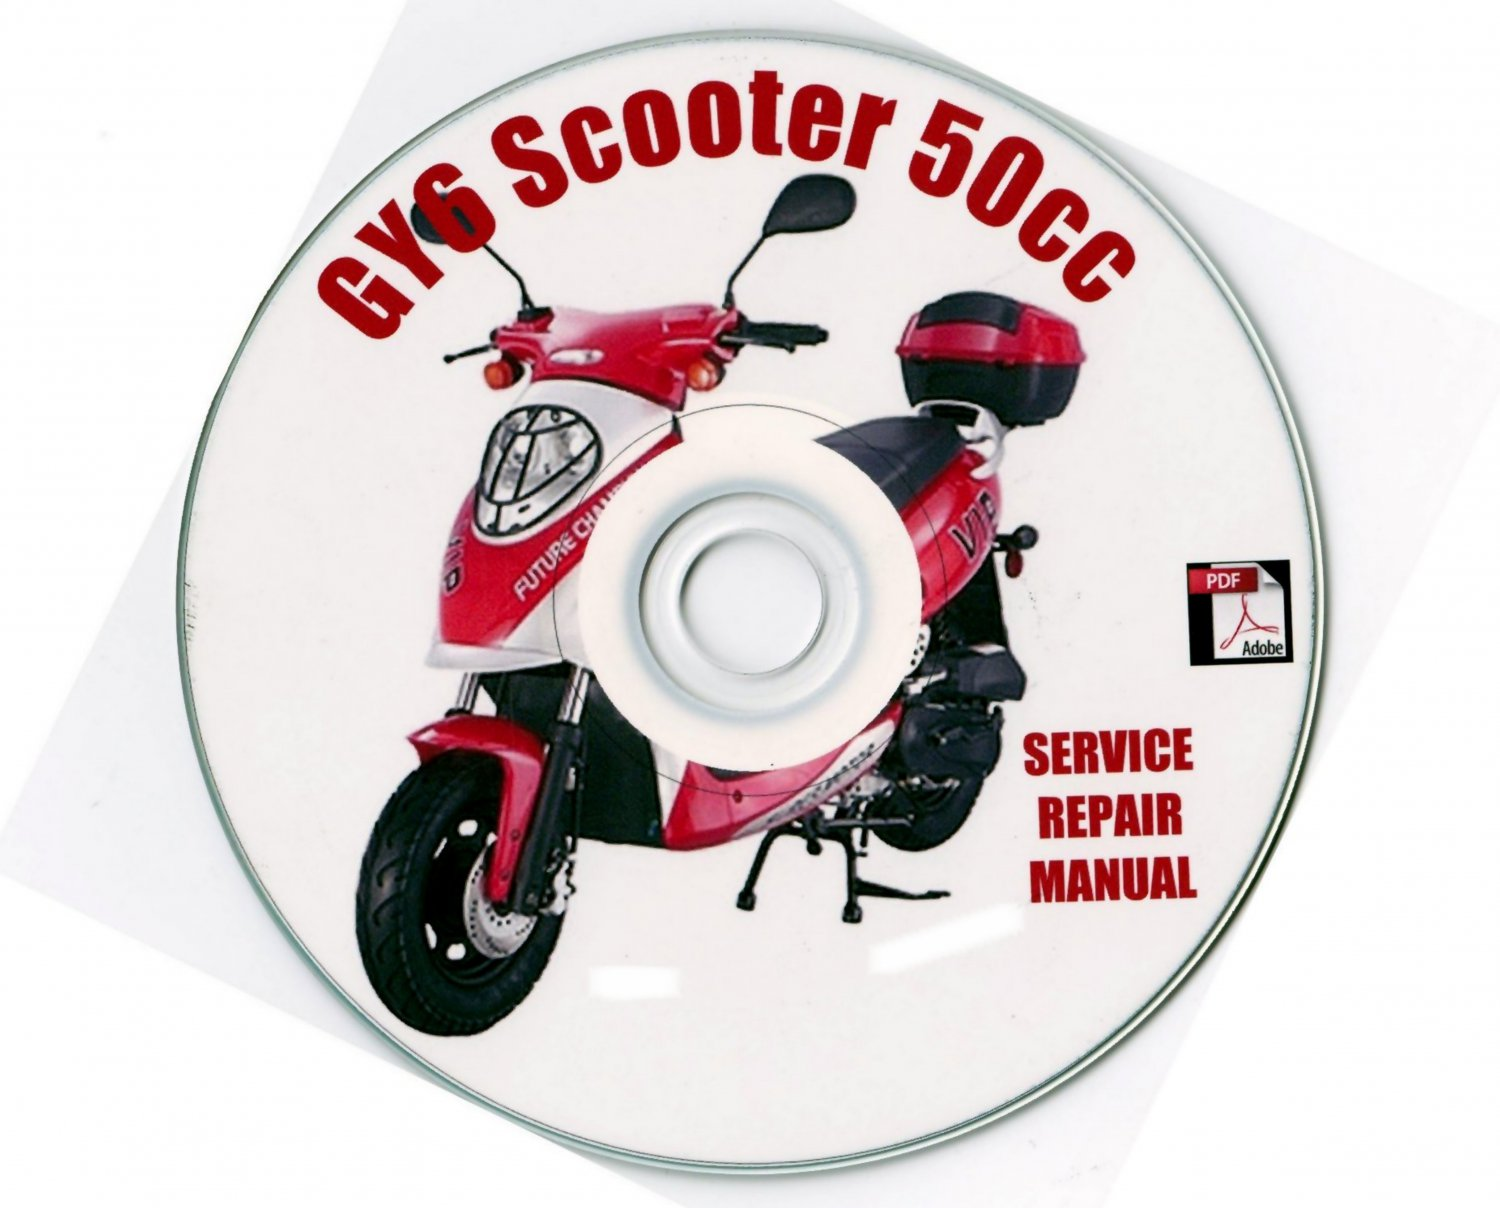 Scooter PEACE SPORTS VIP JONWAY 50cc GY6 QMB 50 Service Repair Manual  Chinese